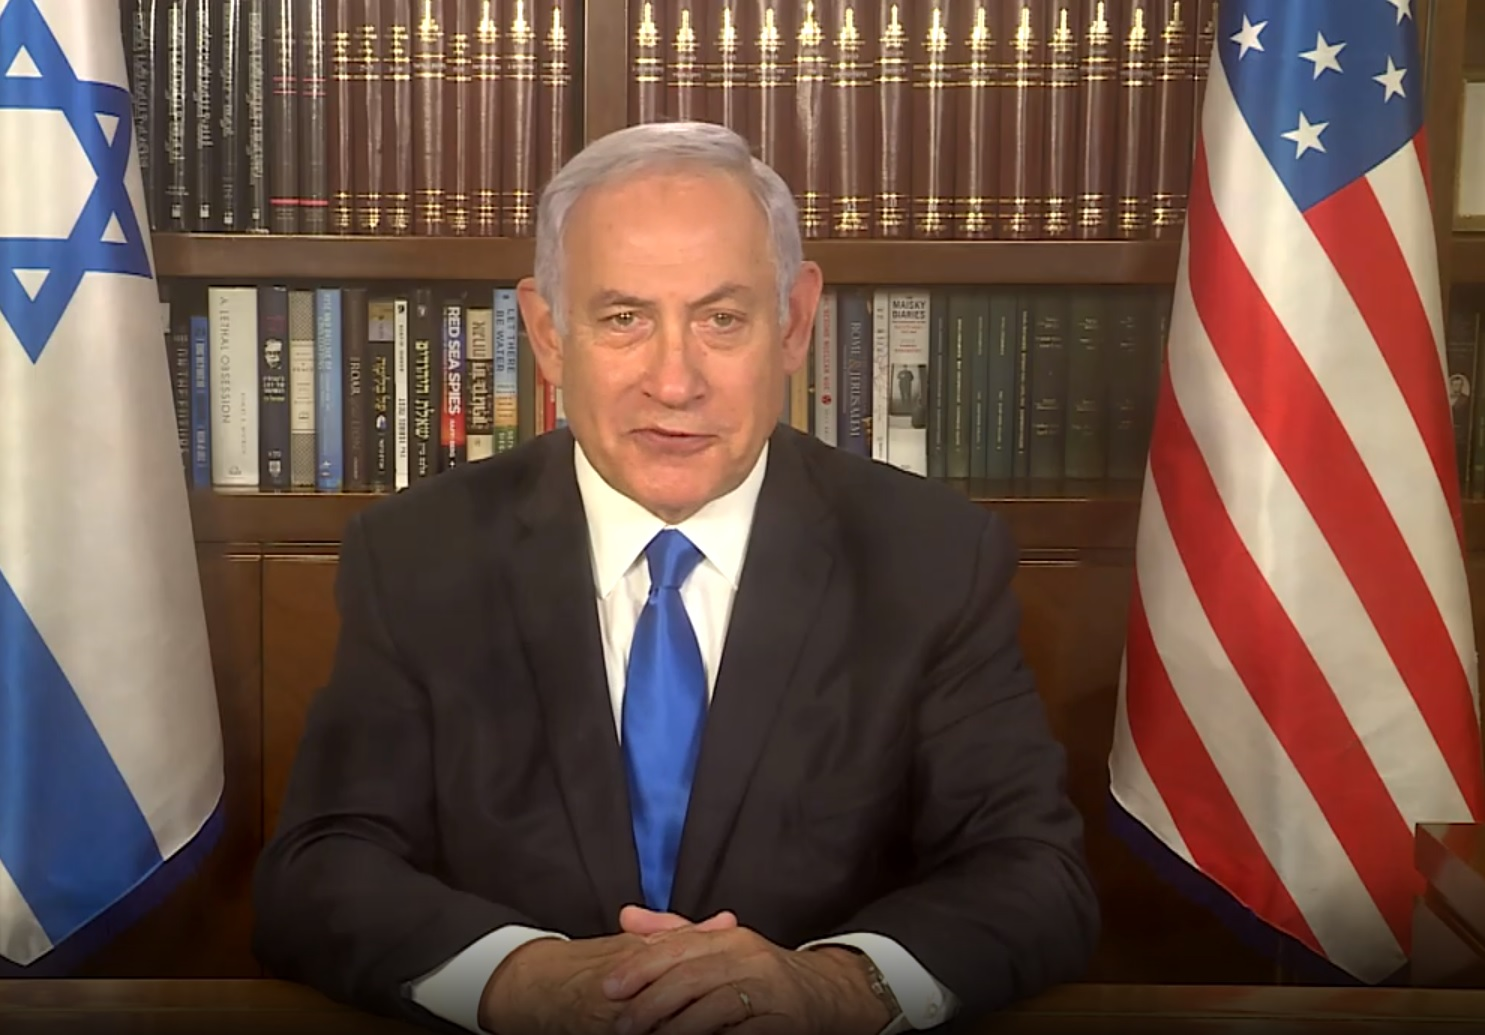 Biden administration should not make the mistake of lifting sanctions on Iran: Israel PM Netanyahu